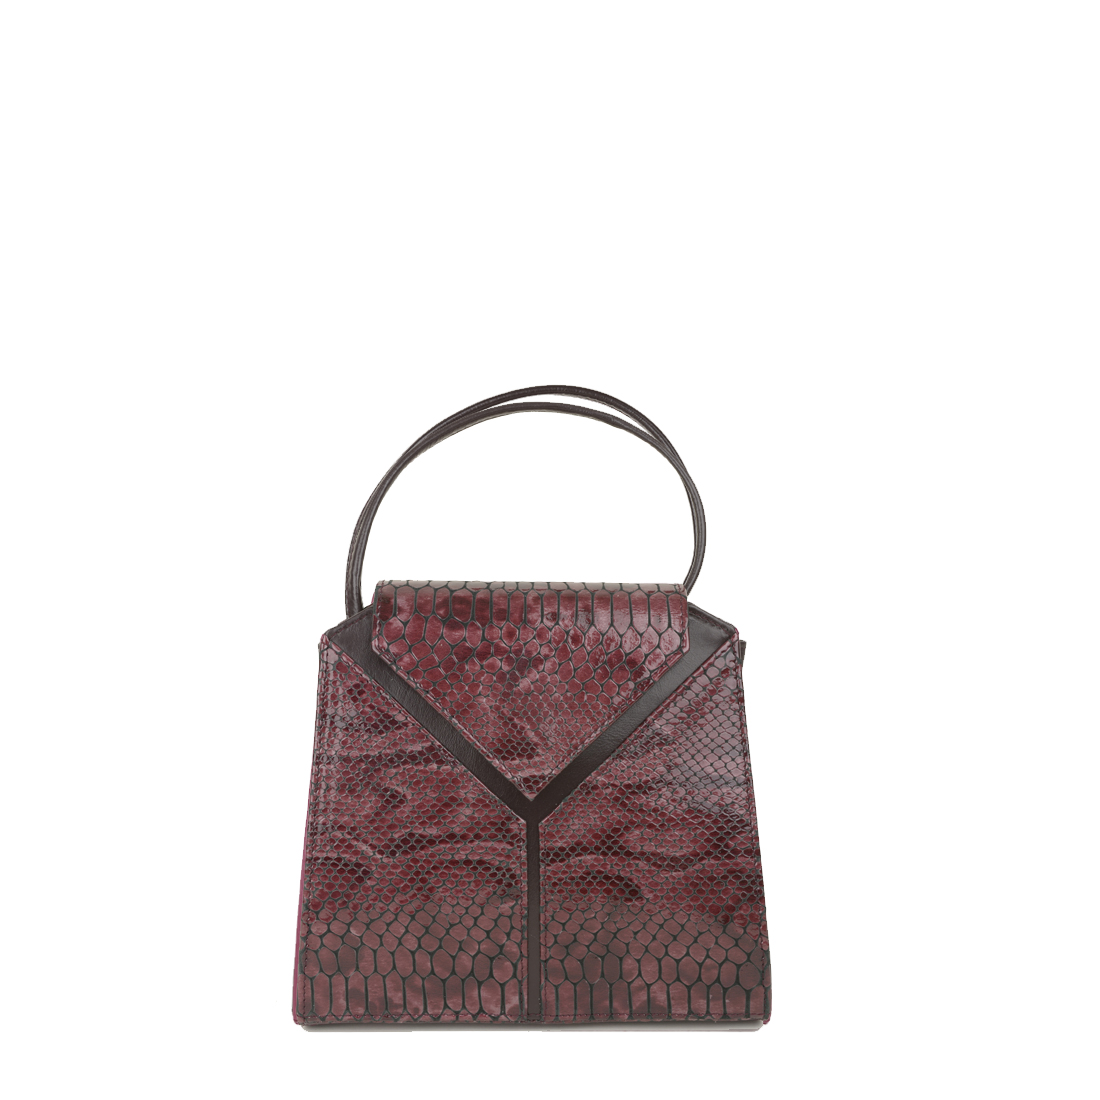 Yasmin Plum Python Print Leather Evening Shoulder Bag